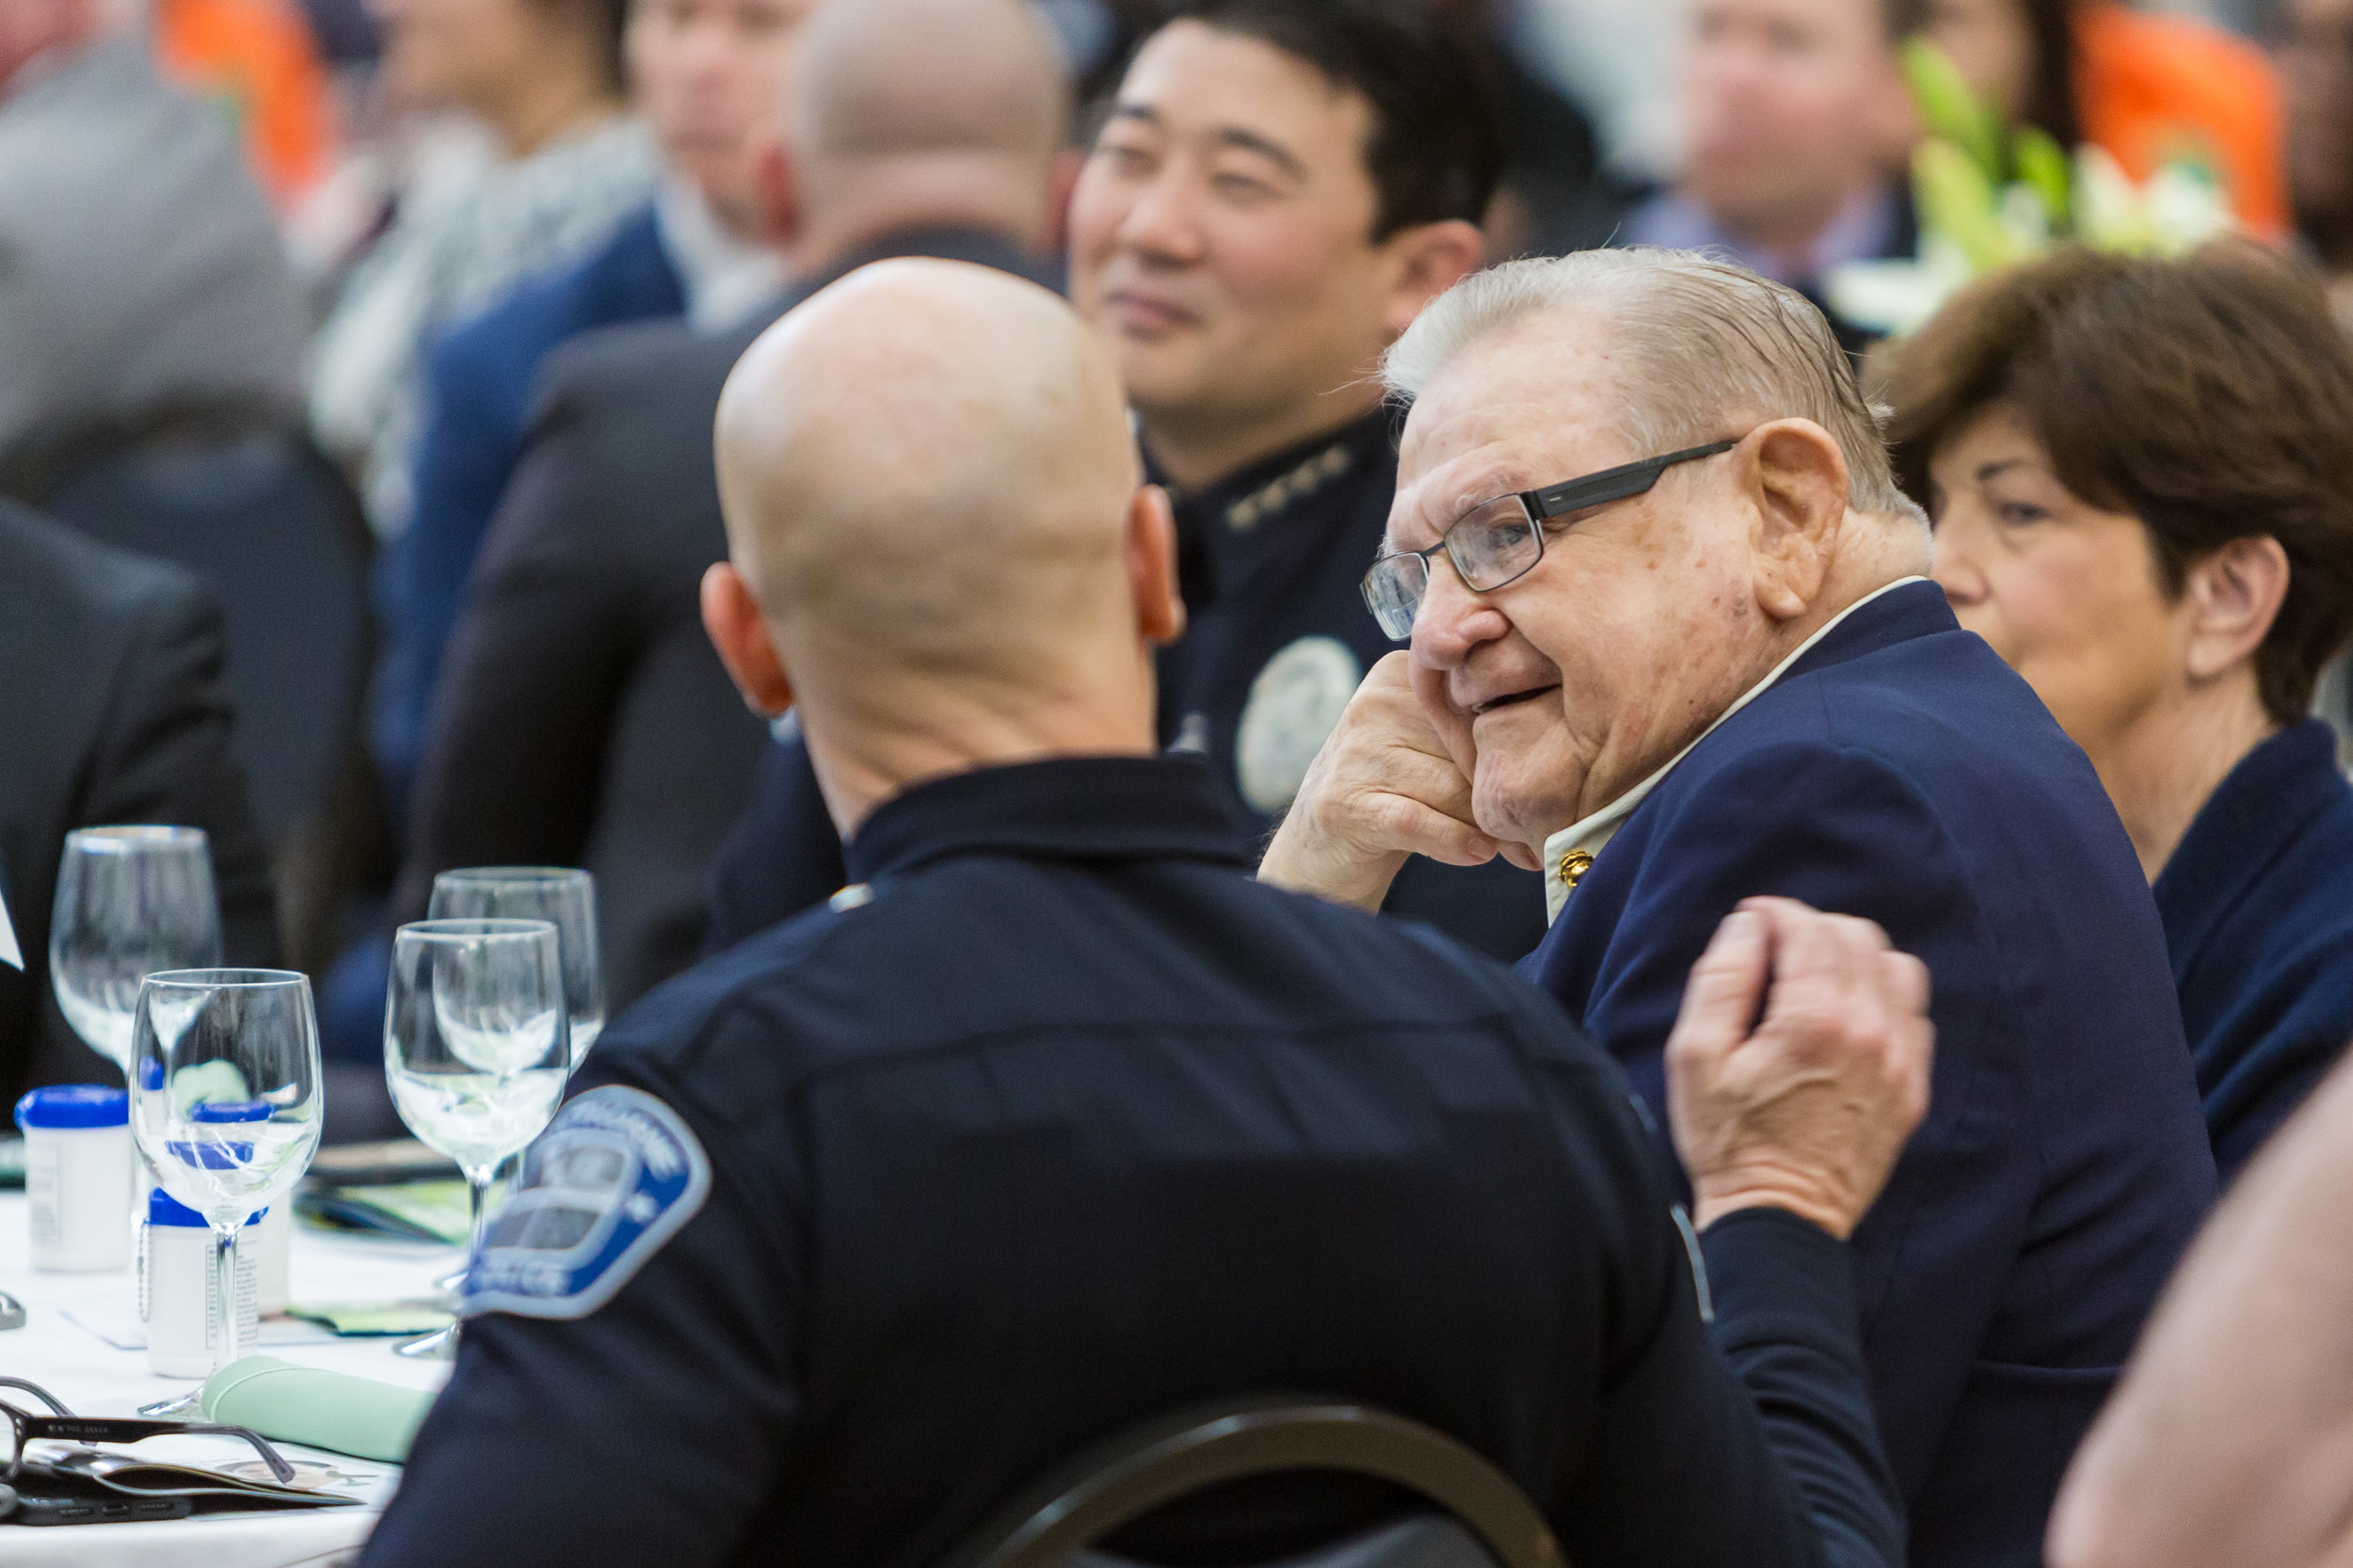 Citizen of the Year Dick Miller with Chief Ishii